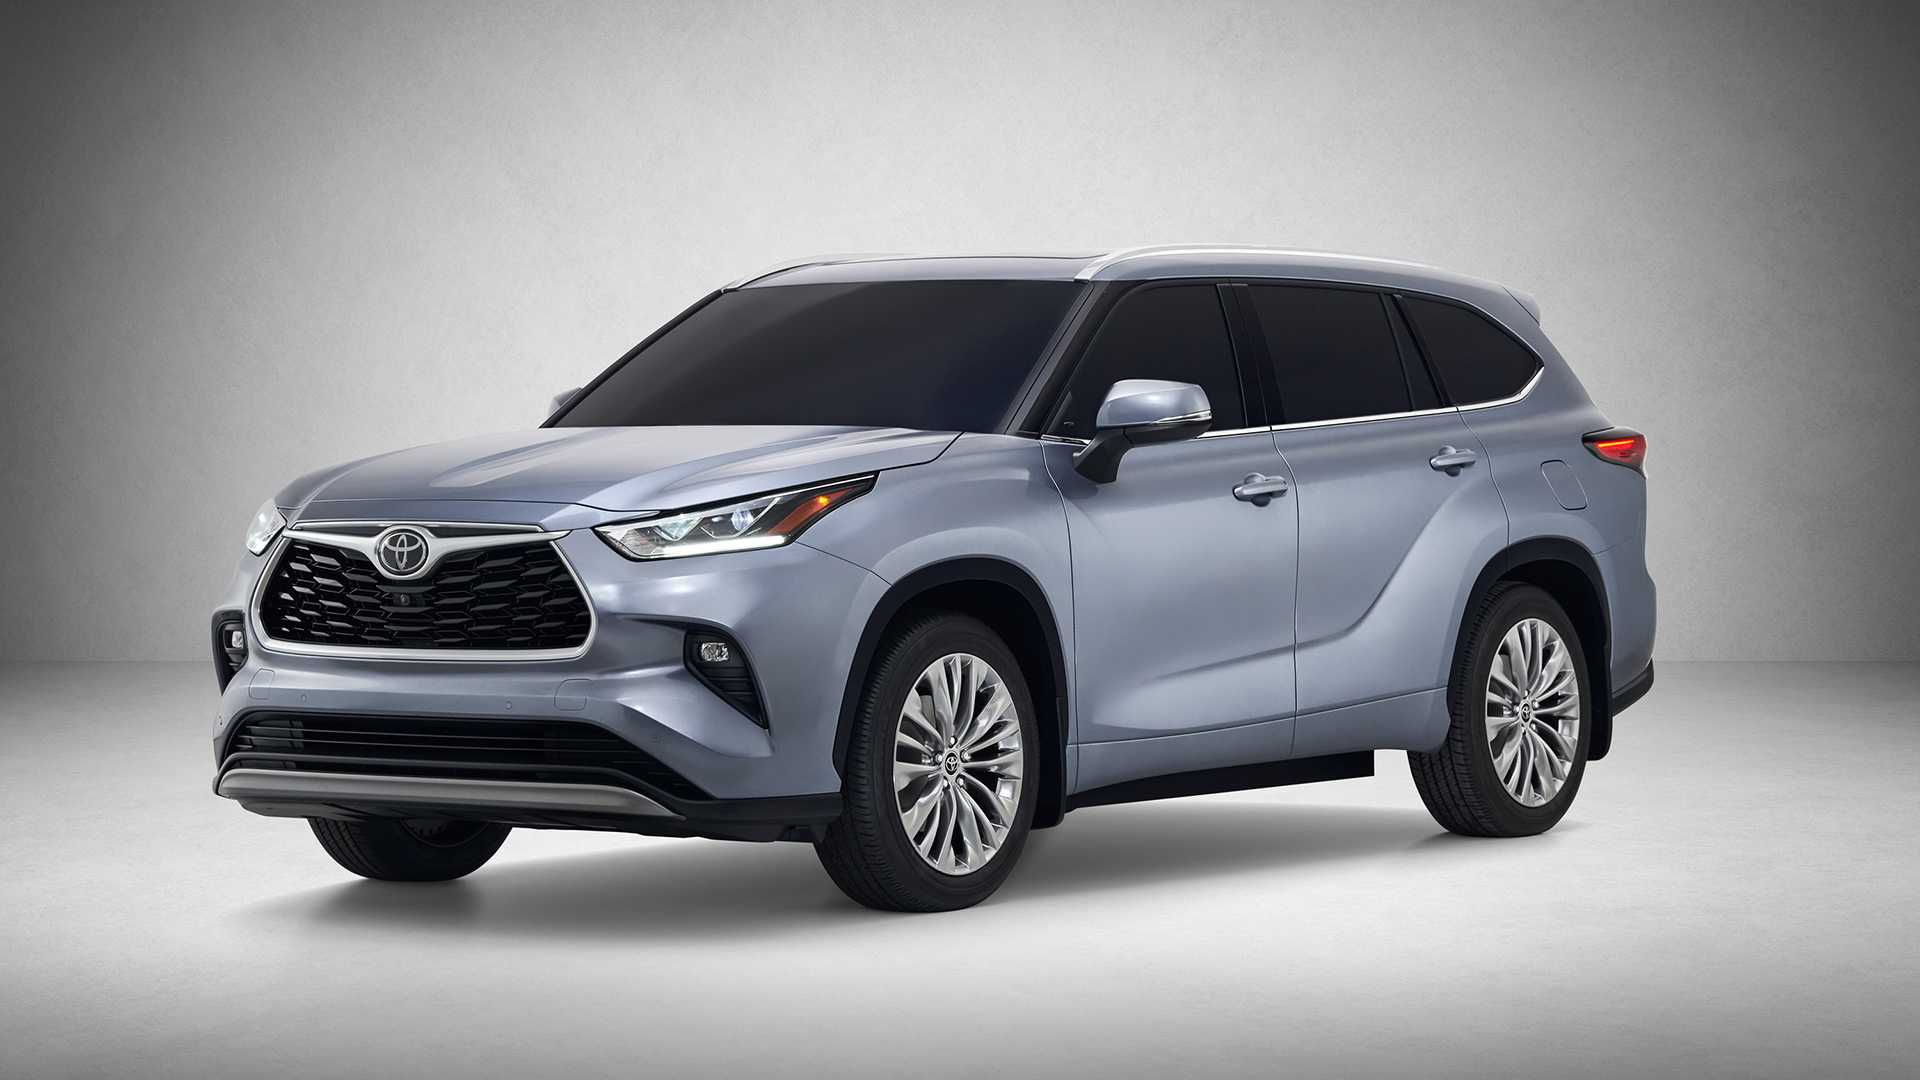 Toyota has taken the wraps off its next-generation Highlander SUV on the opening day of the 2019 New York Auto Show